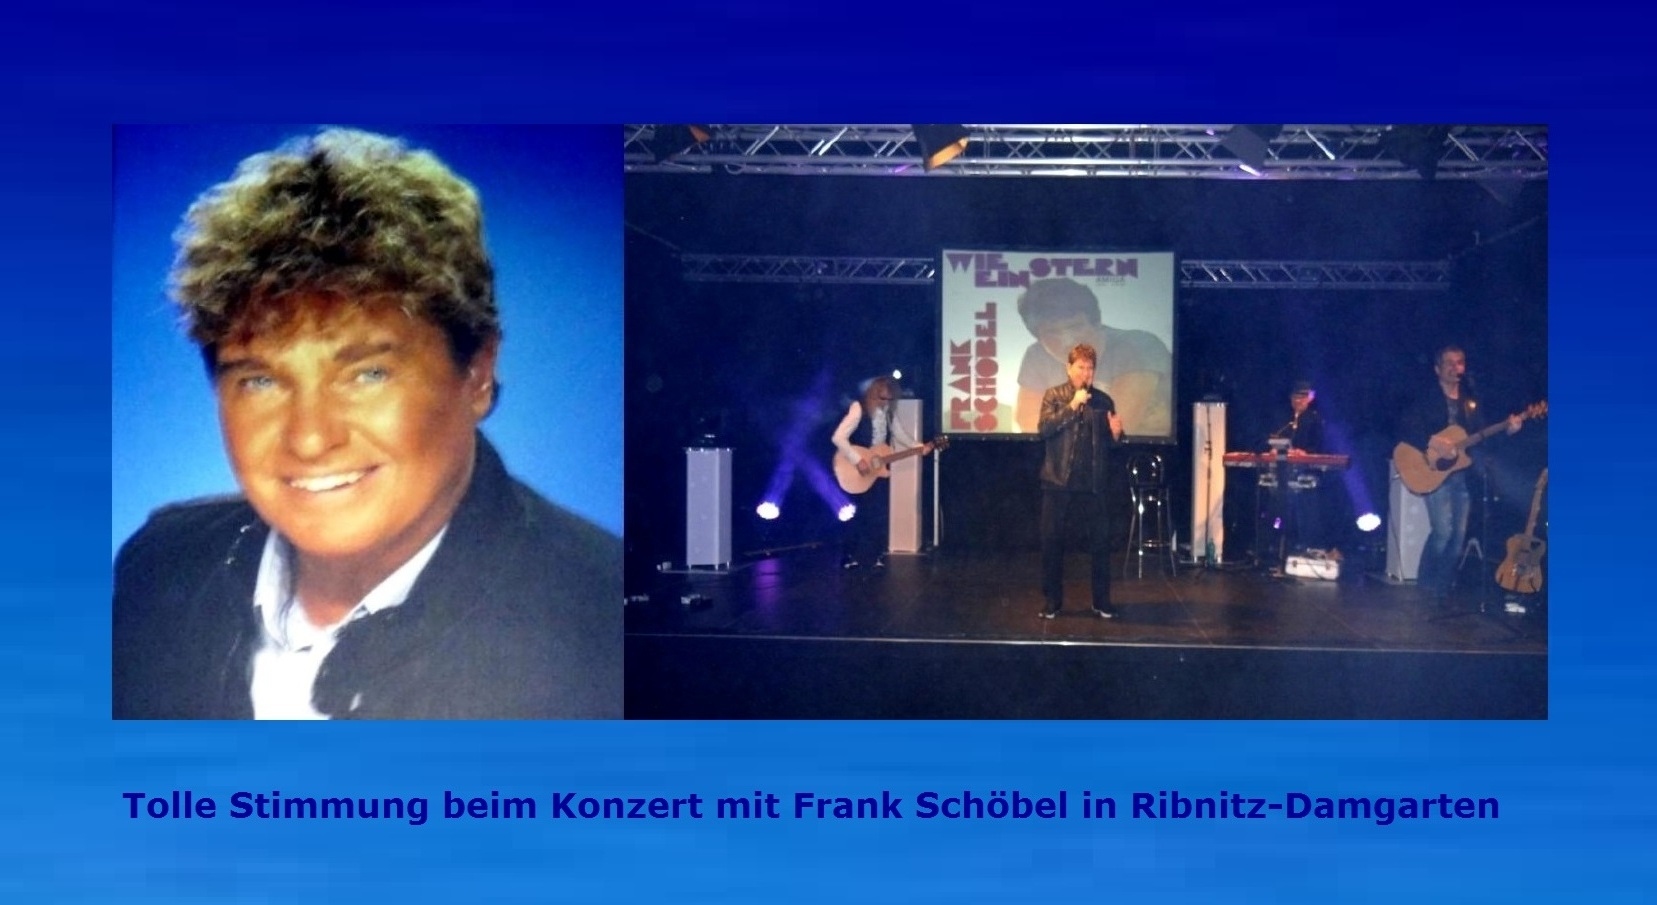 Tolle Stimmung beim Konzert 'HIT auf HIT' mit  Frank Schöbel am 6. Januar 2019 im Begegnungszentrum Ribnitz-Damgarten. Fotos: Eckart Kreitlow